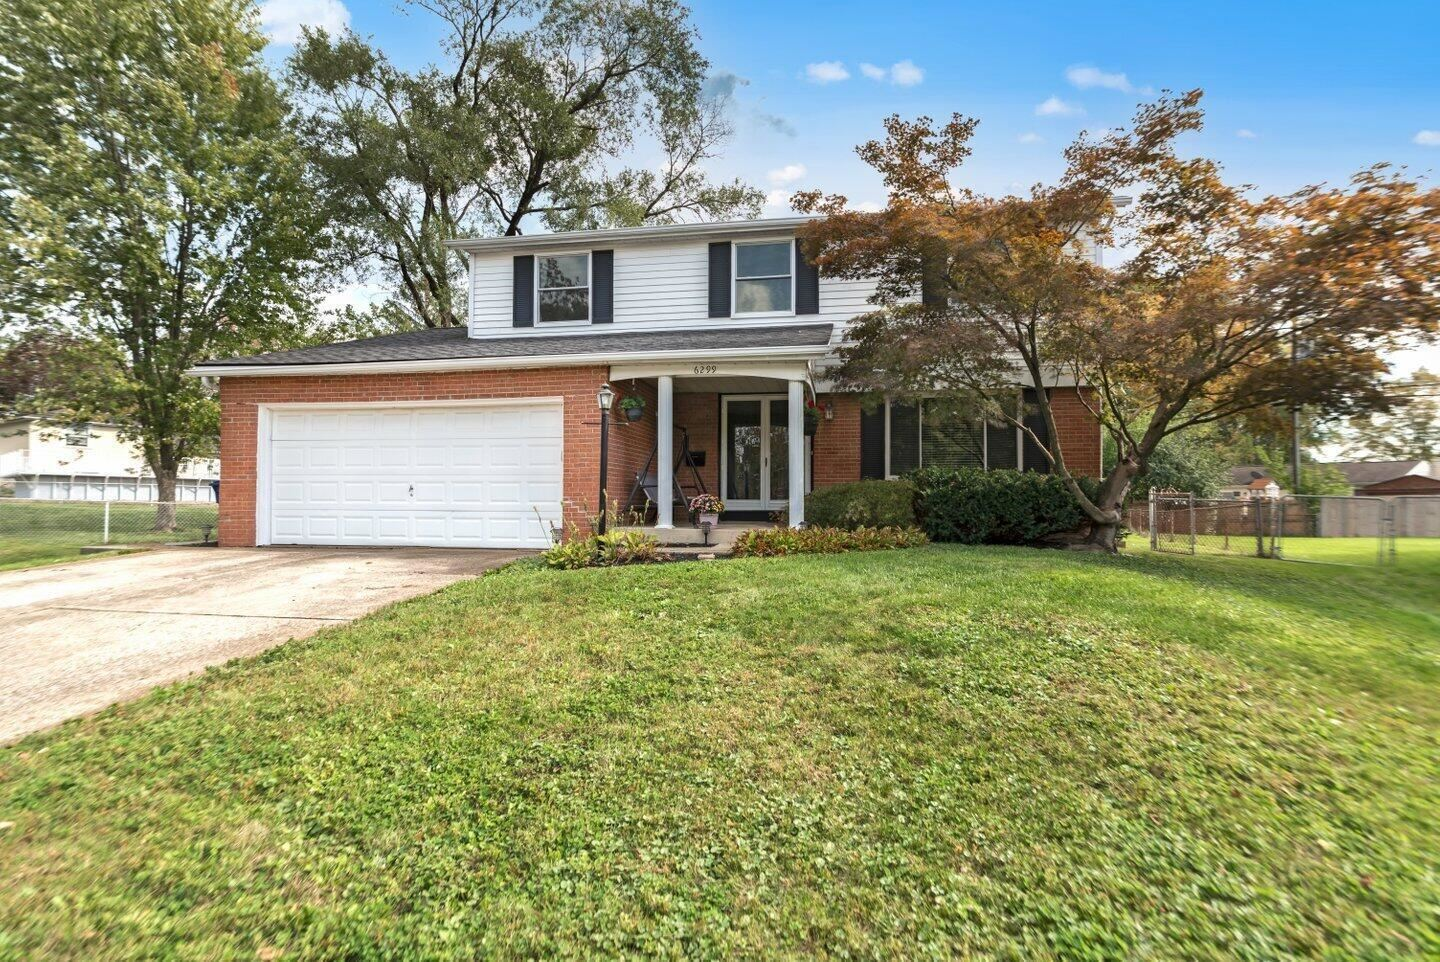 Photo of 6299 Vickers Court, Westerville, OH 43081 (MLS # 221040975)